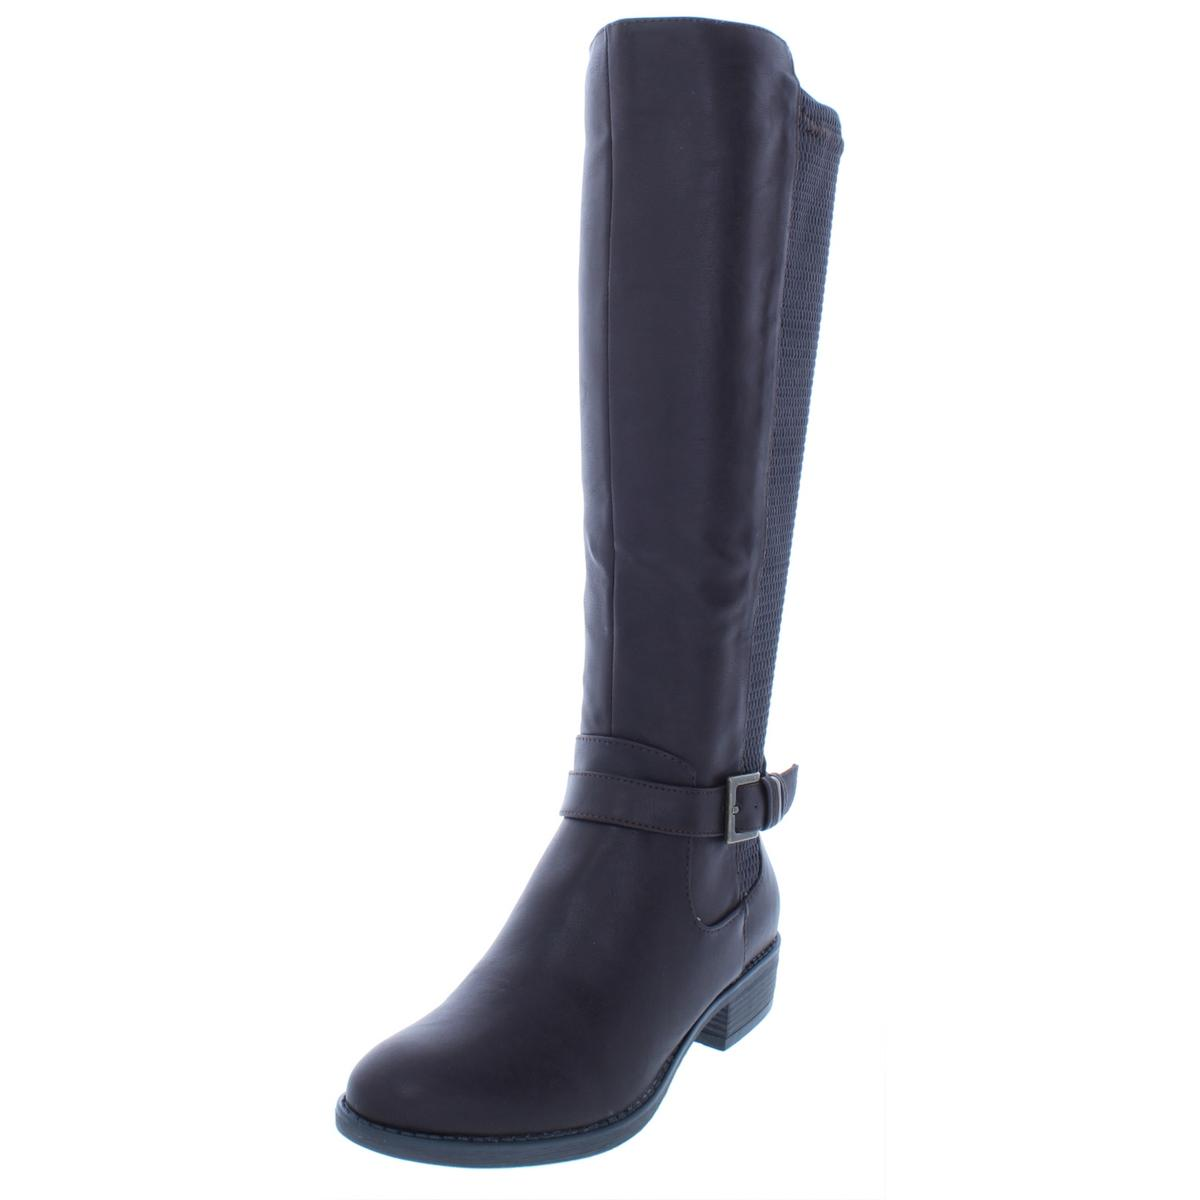 Style & Co. Damenschuhe Luciaa Knee-High Faux Leder Knee-High Luciaa Riding Stiefel Schuhes BHFO 4667 588164